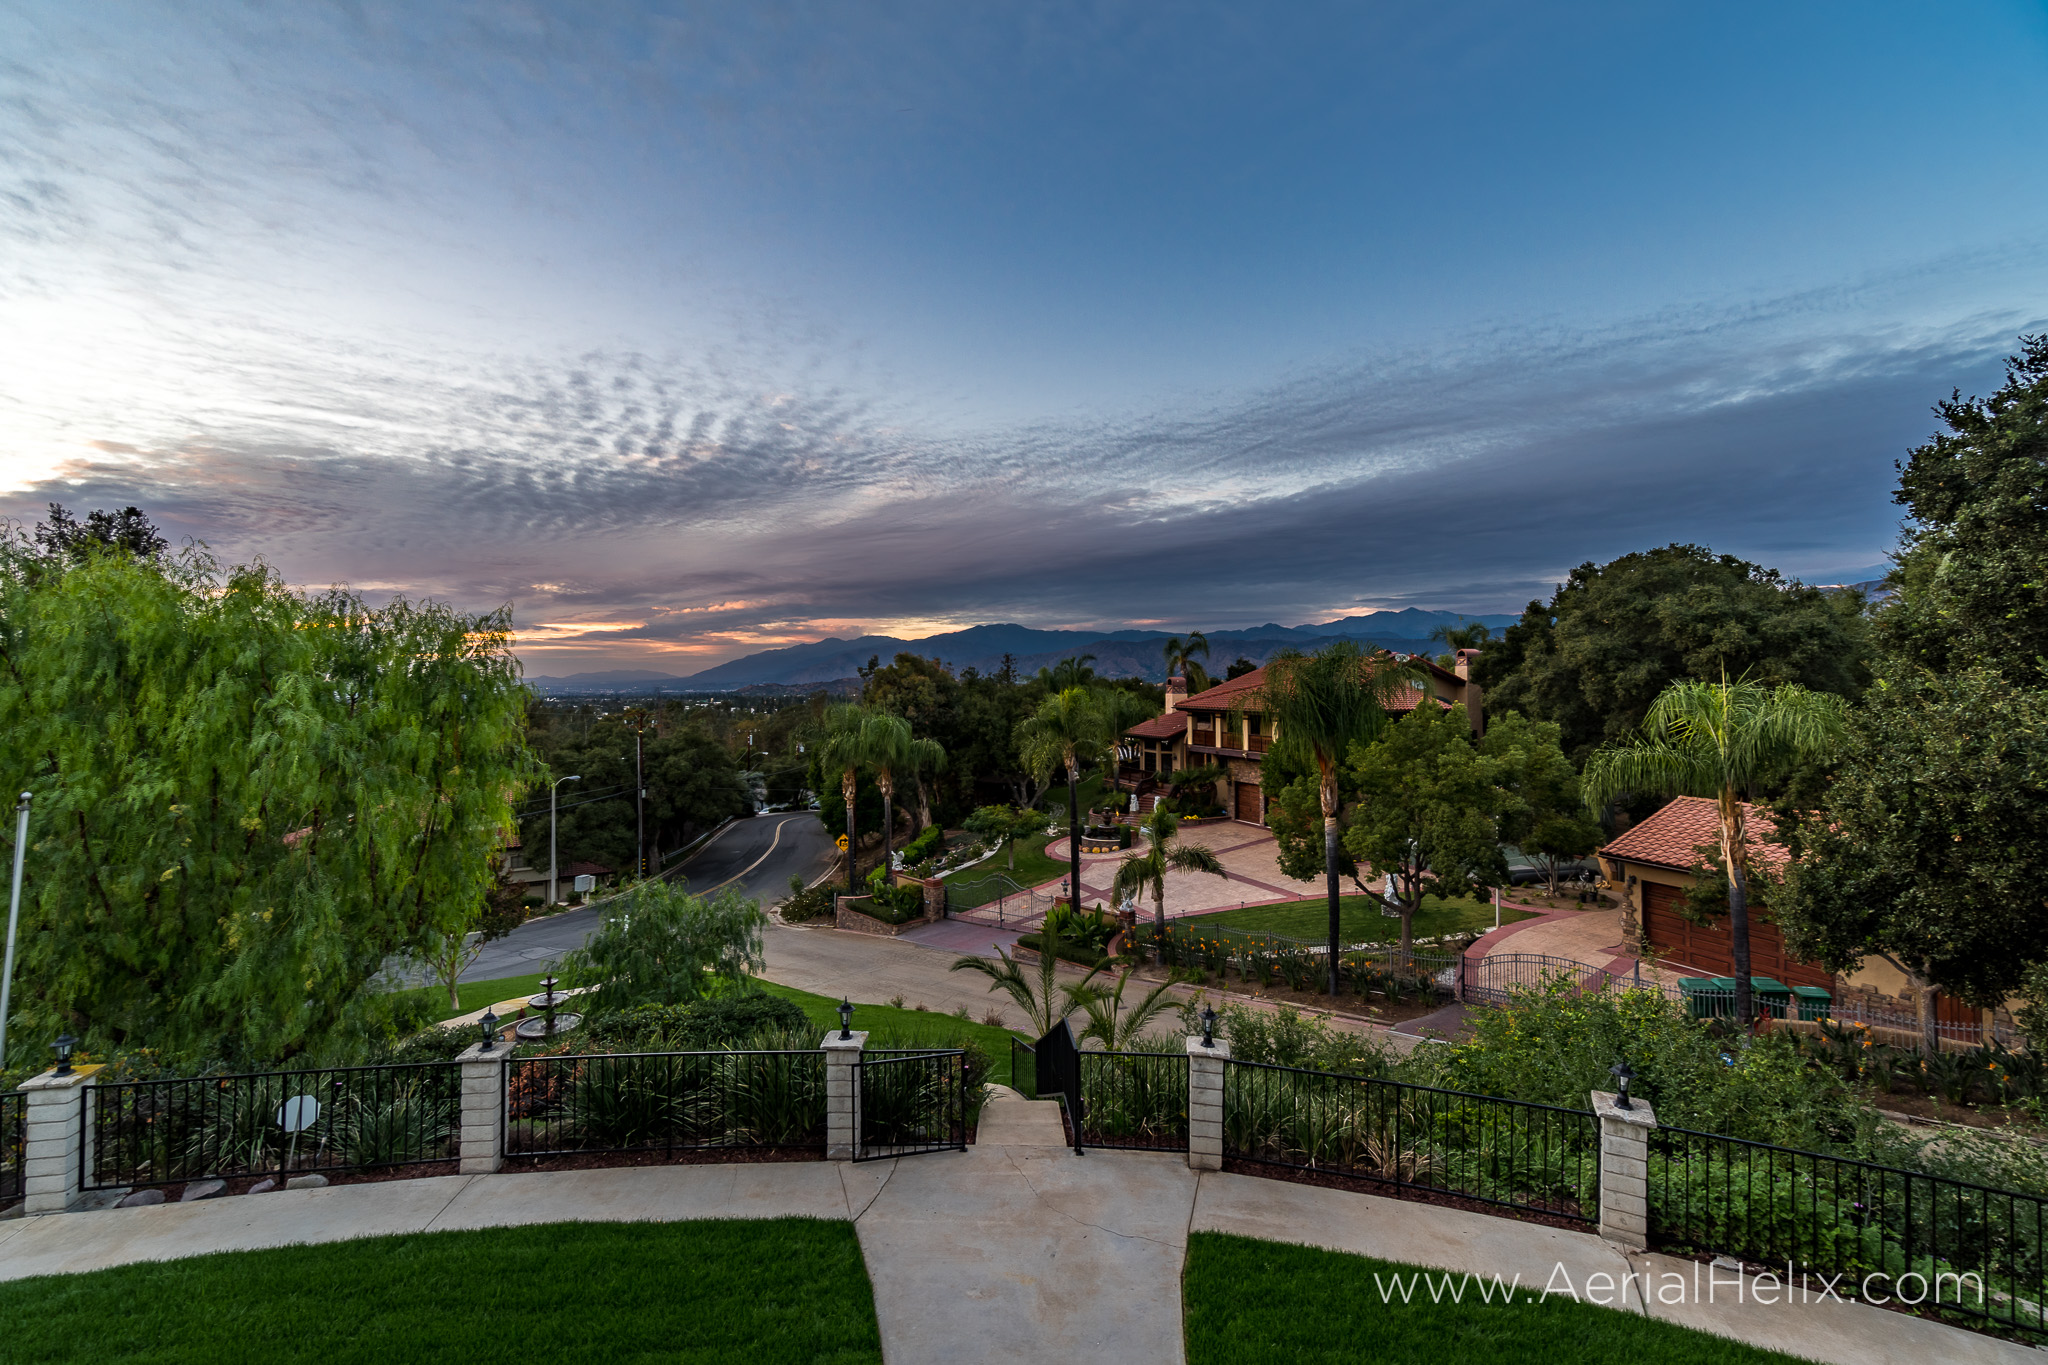 Walnut Ave Twilight - Real estate photographer-2.jpg